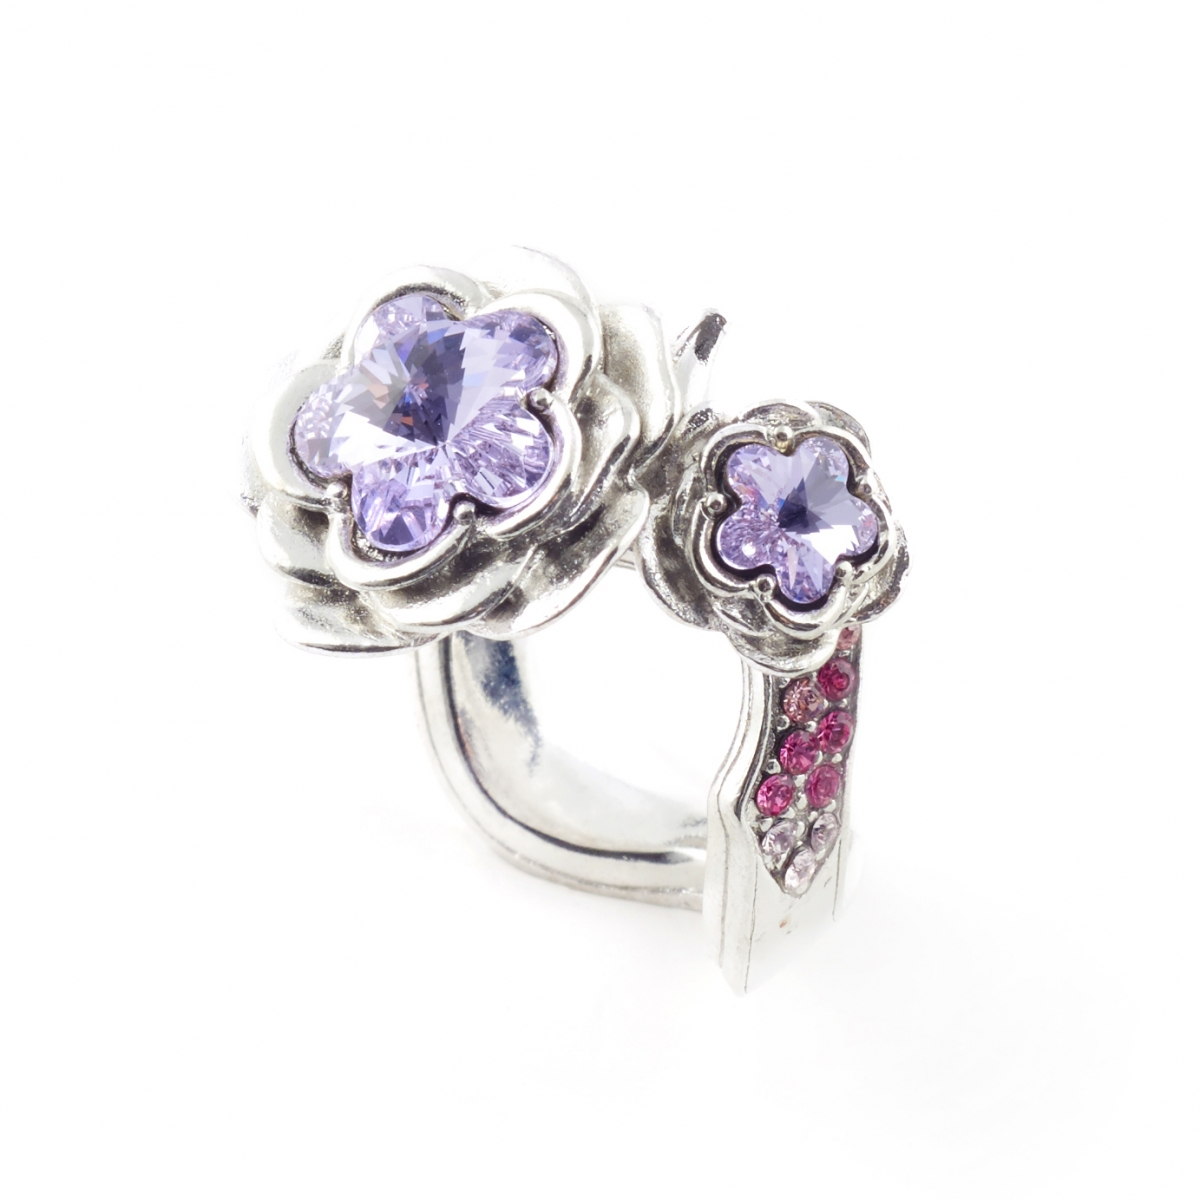 Botanical Floral Ring